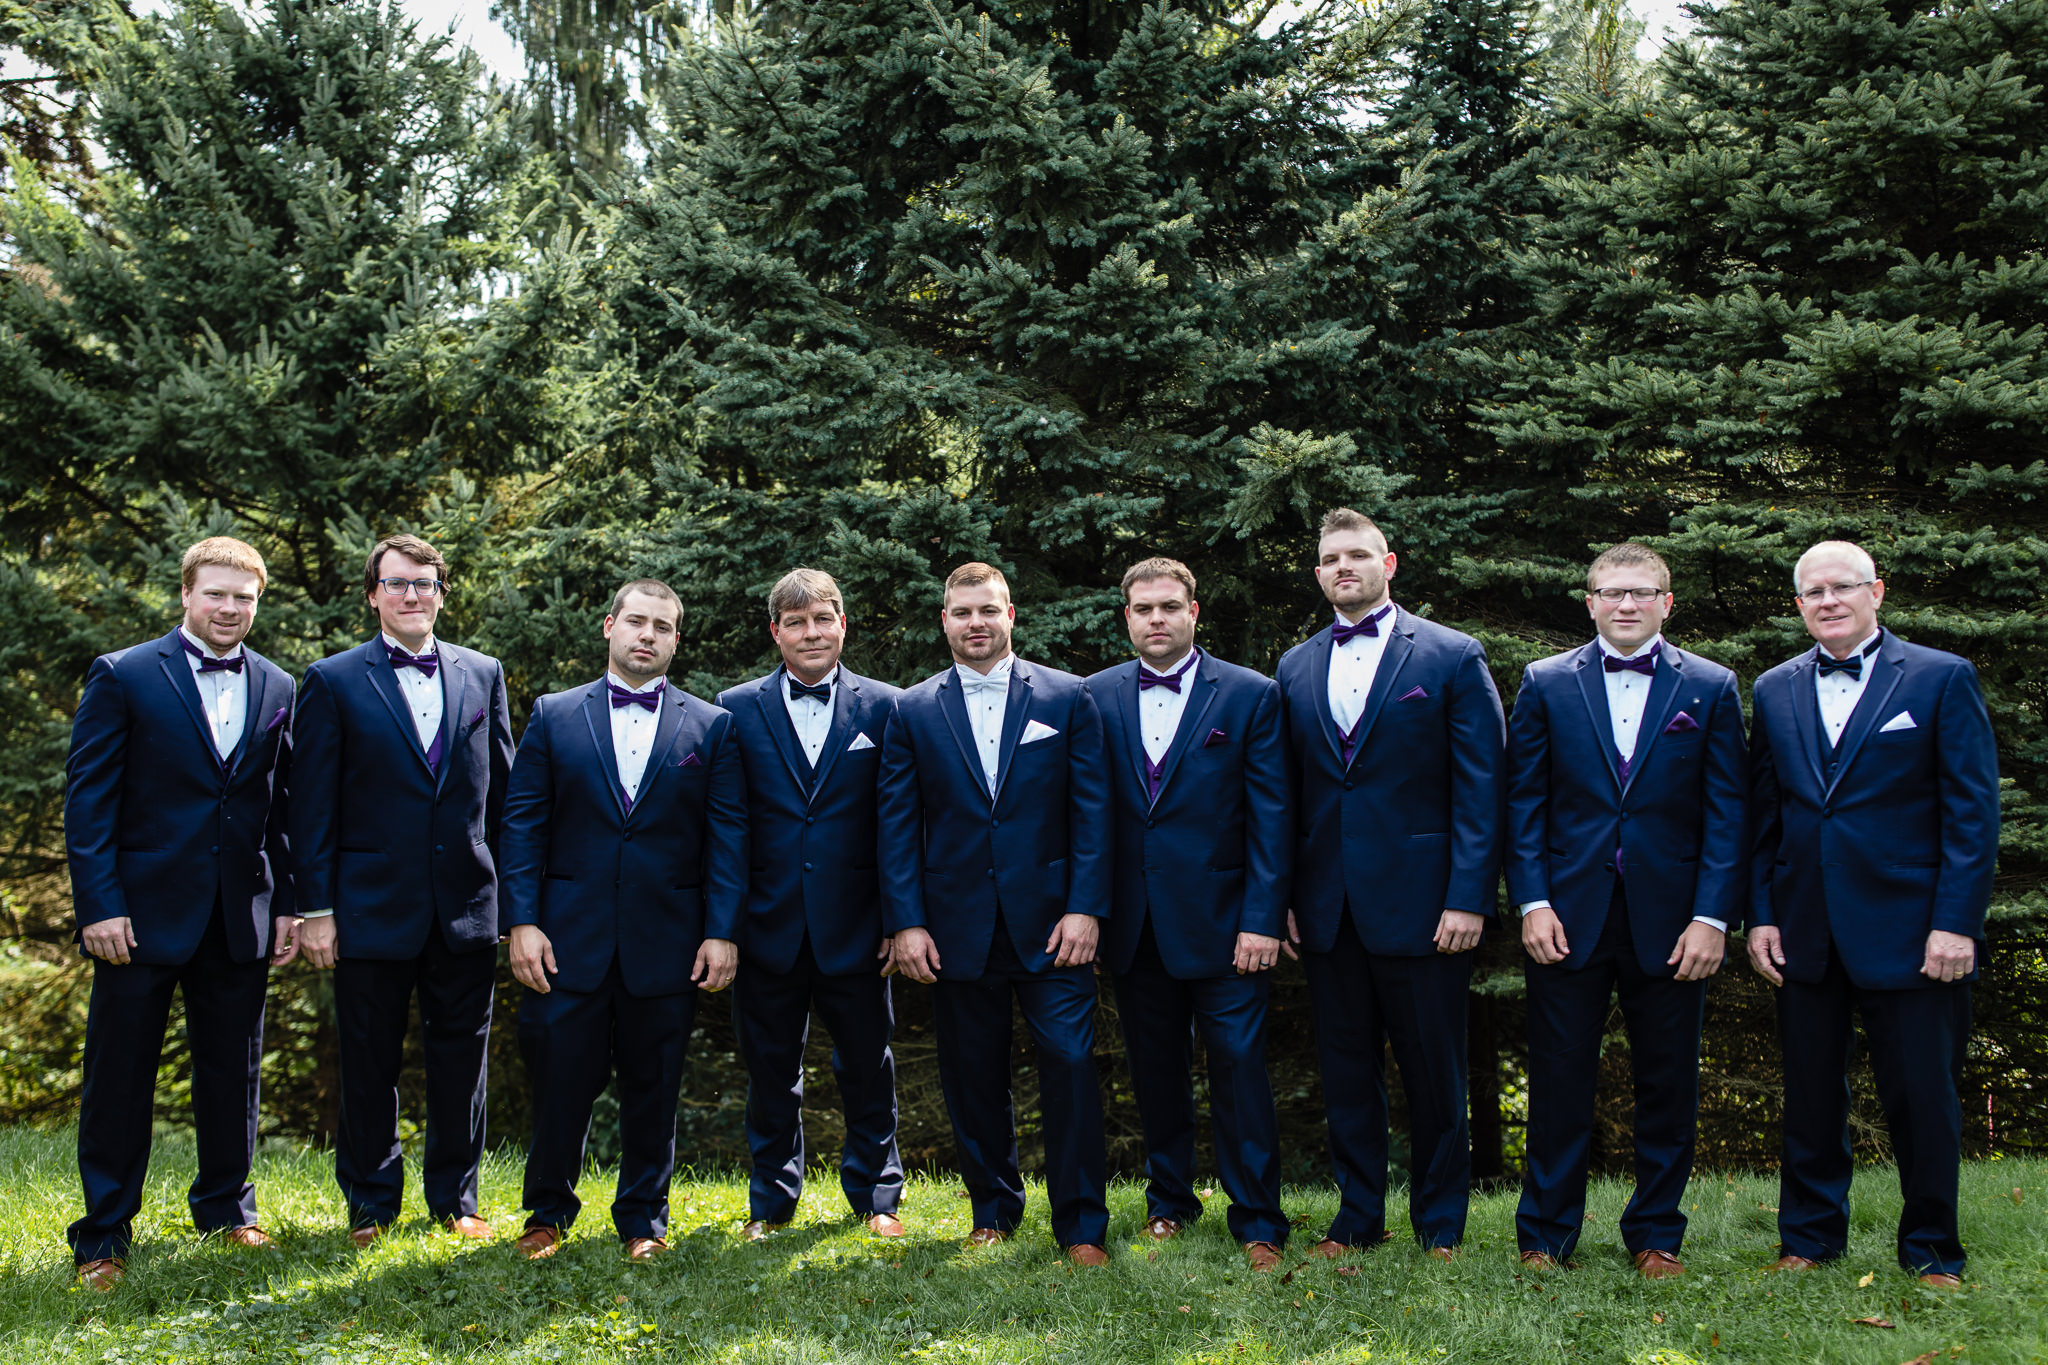 Groom poses with his groomsmen and fathers before his wedding at the Fez